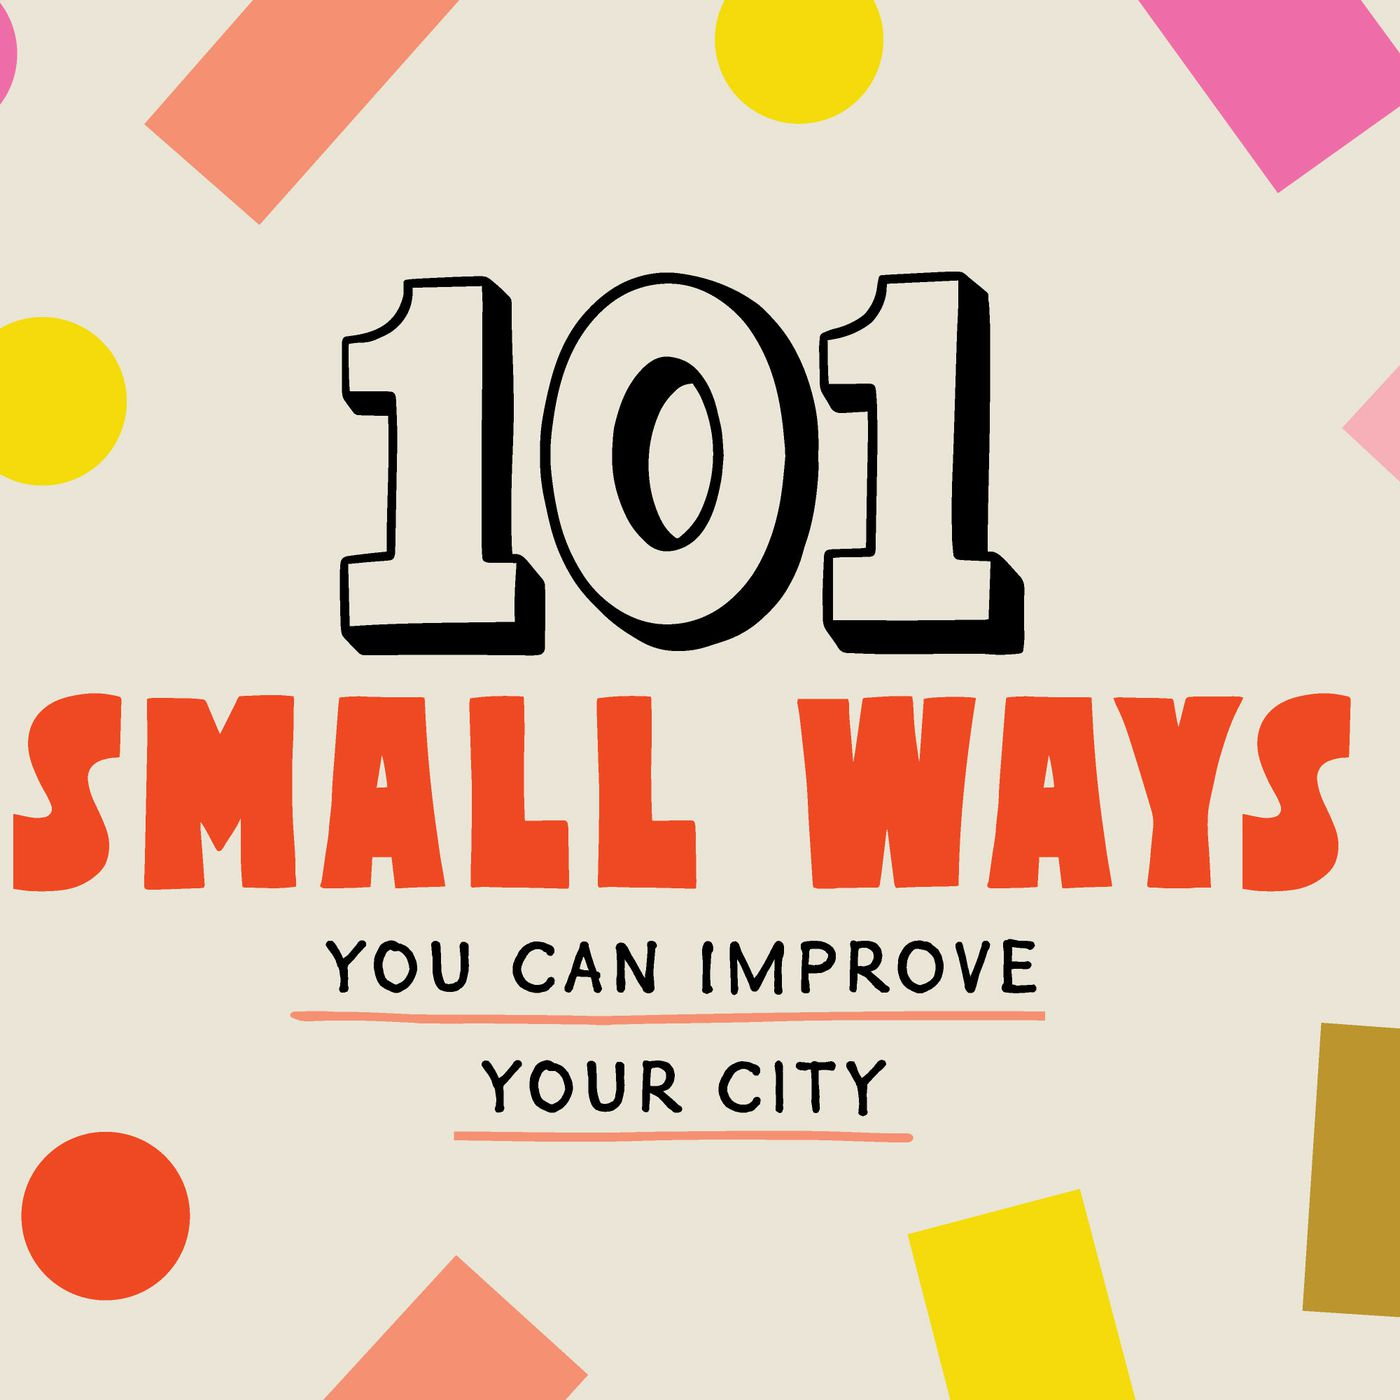 101 small ways you can improve your city - Curbed